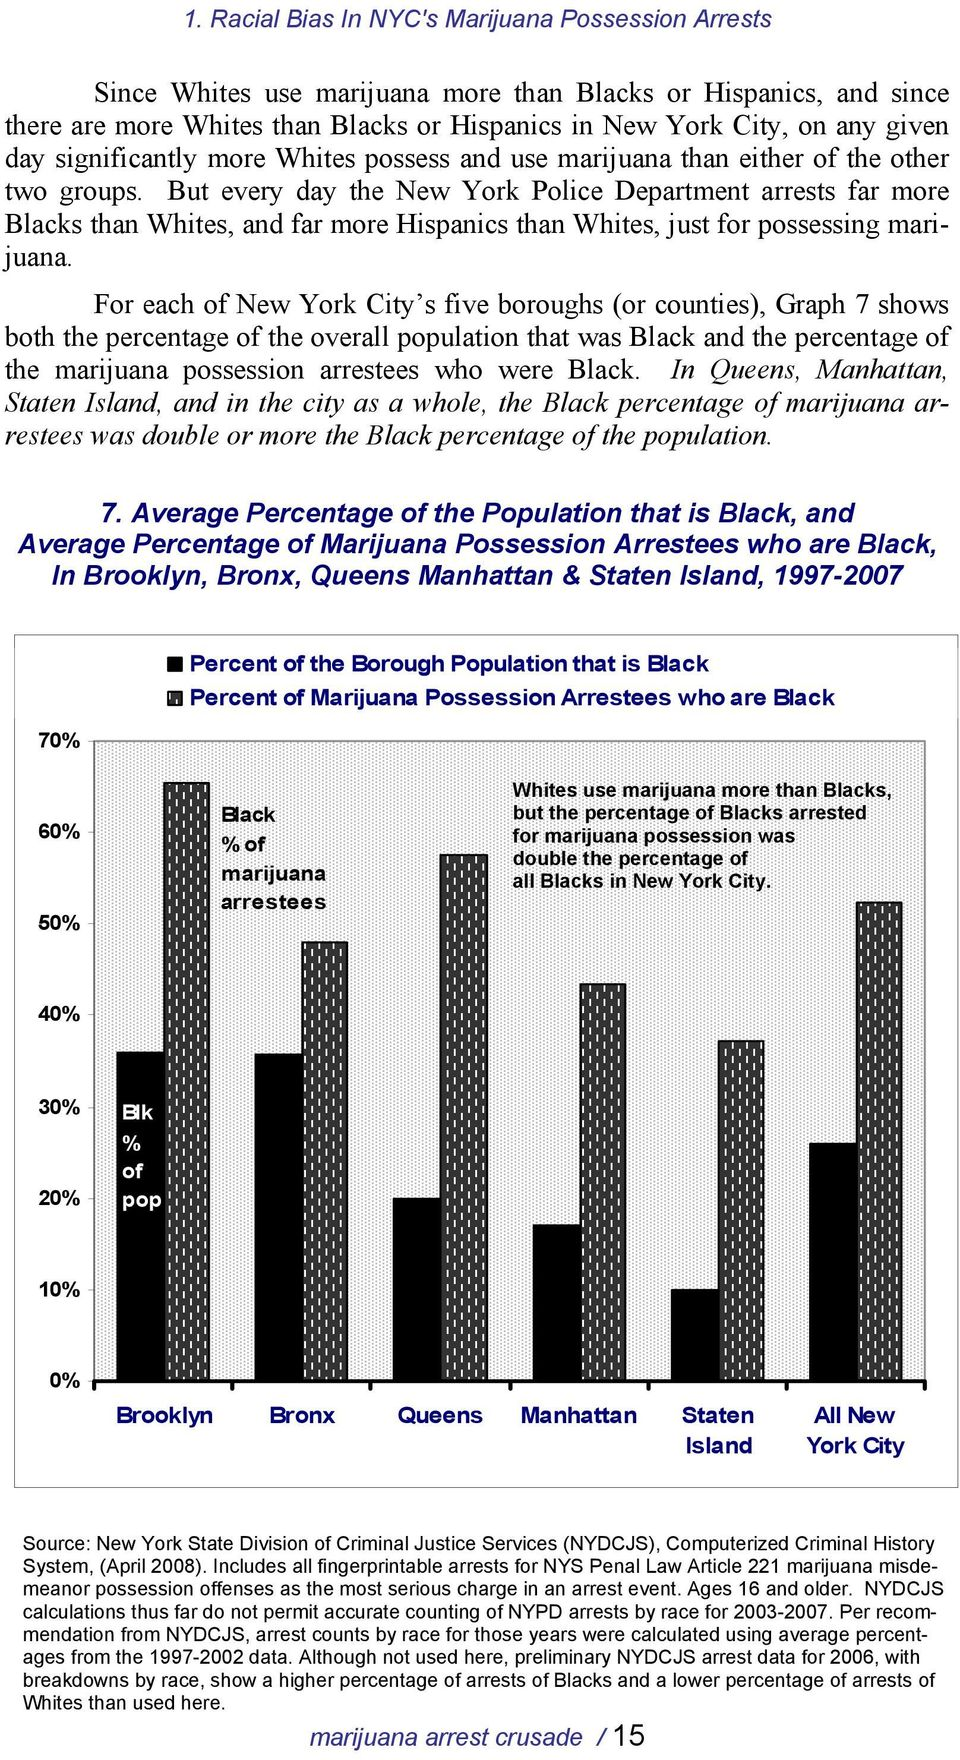 But every day the New York Police Department arrests far more Blacks than Whites, and far more Hispanics than Whites, just for possessing marijuana.